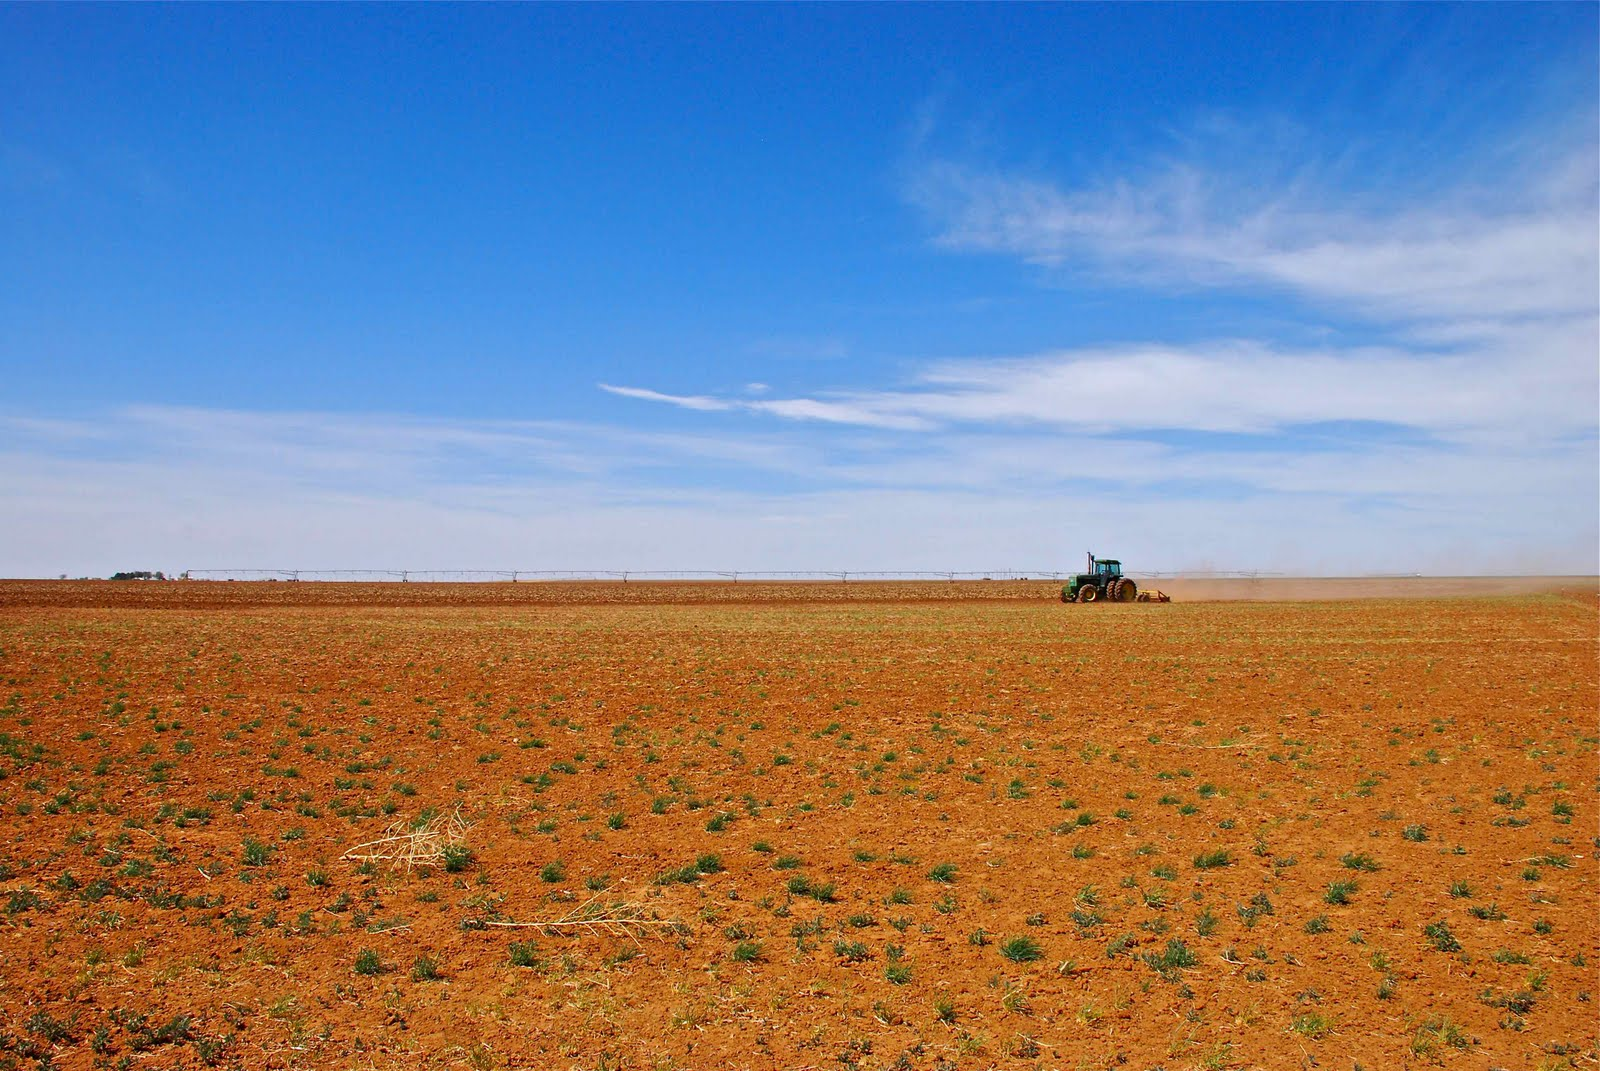 A persistent drought plagues the Llano Estacado. Just after midday I set out for the open plains. I'm eager to assess the state of ranching and agriculture on the tablelands Northwest of our town. Disheartening images of an immense, tinder-dry cattle range set the tone for my excursion.Read More